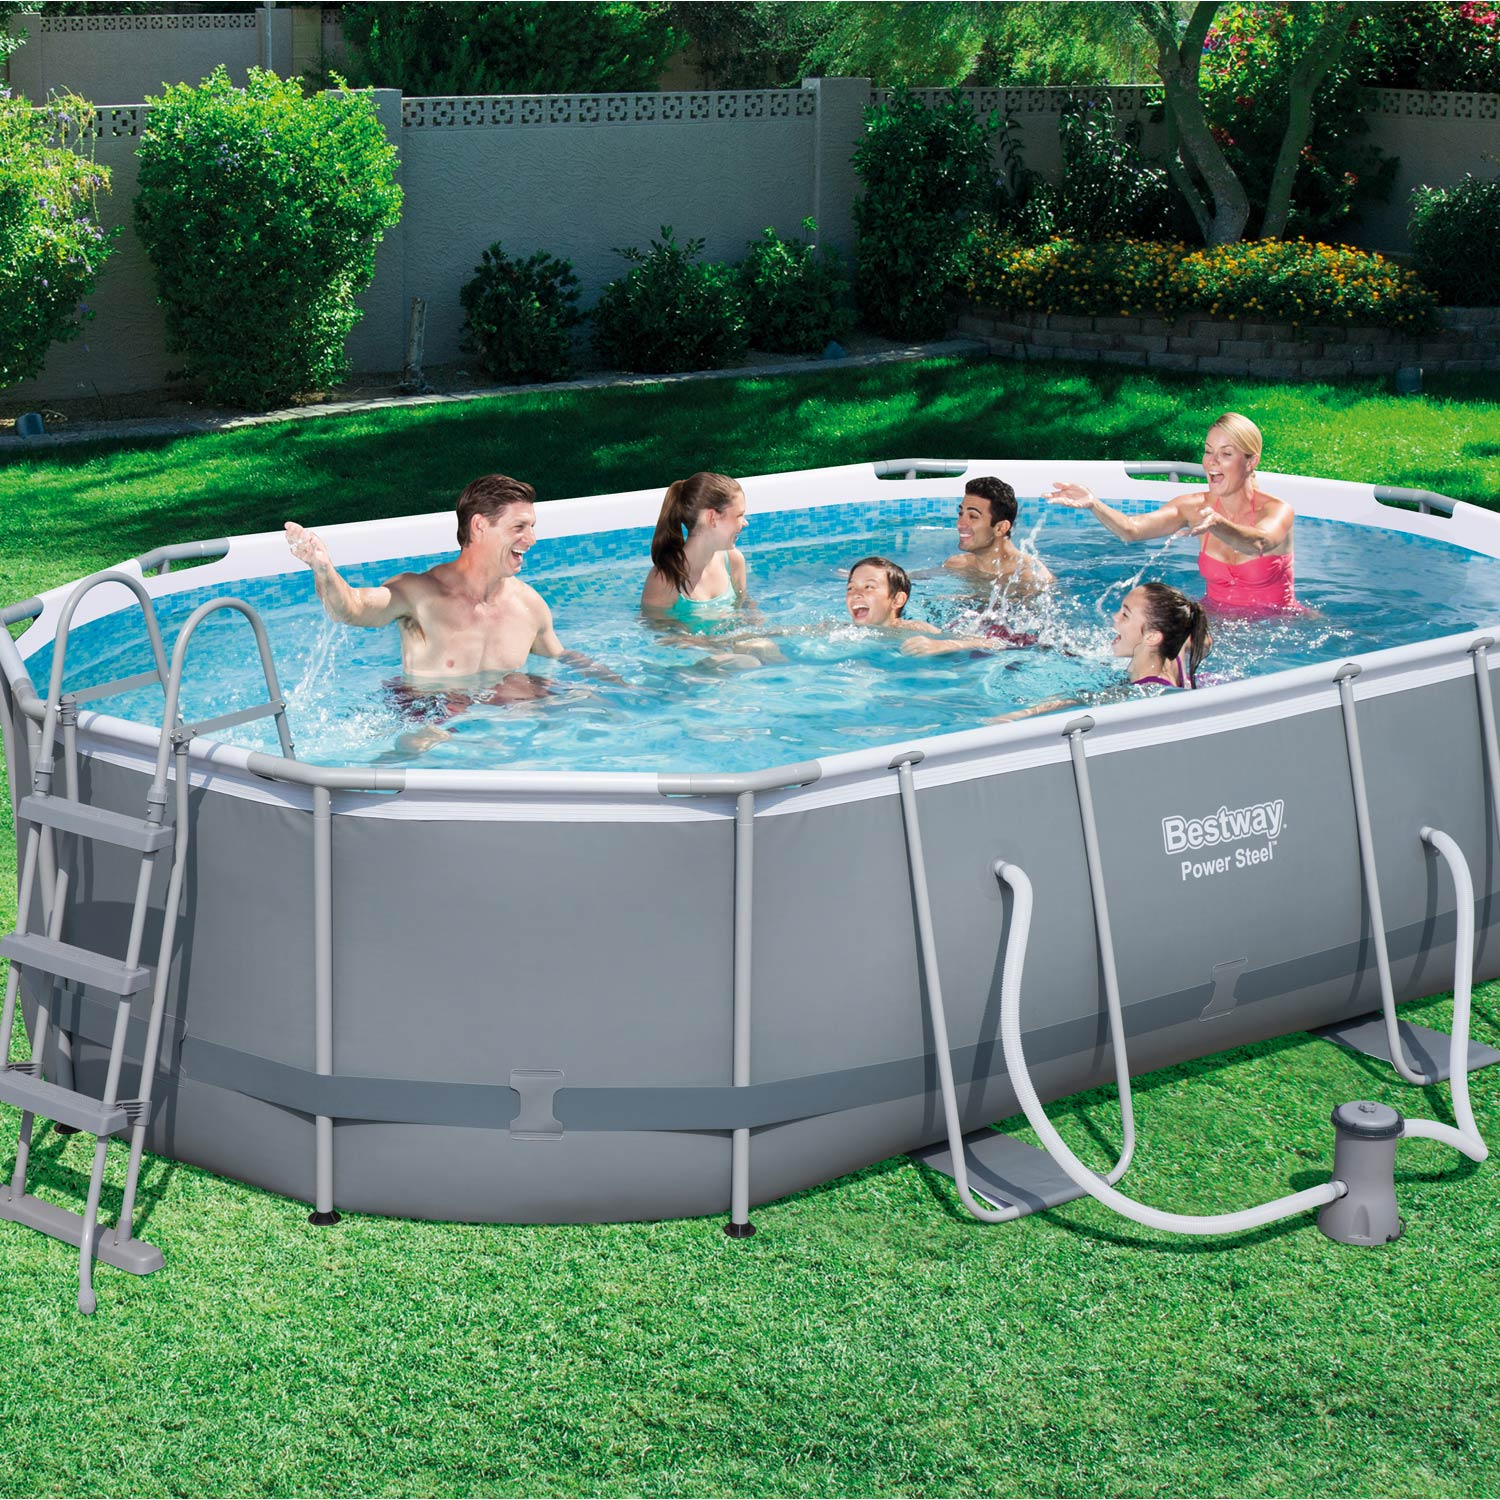 Piscine hors sol autoportante tubulaire bestway l x for Piscine hors sol